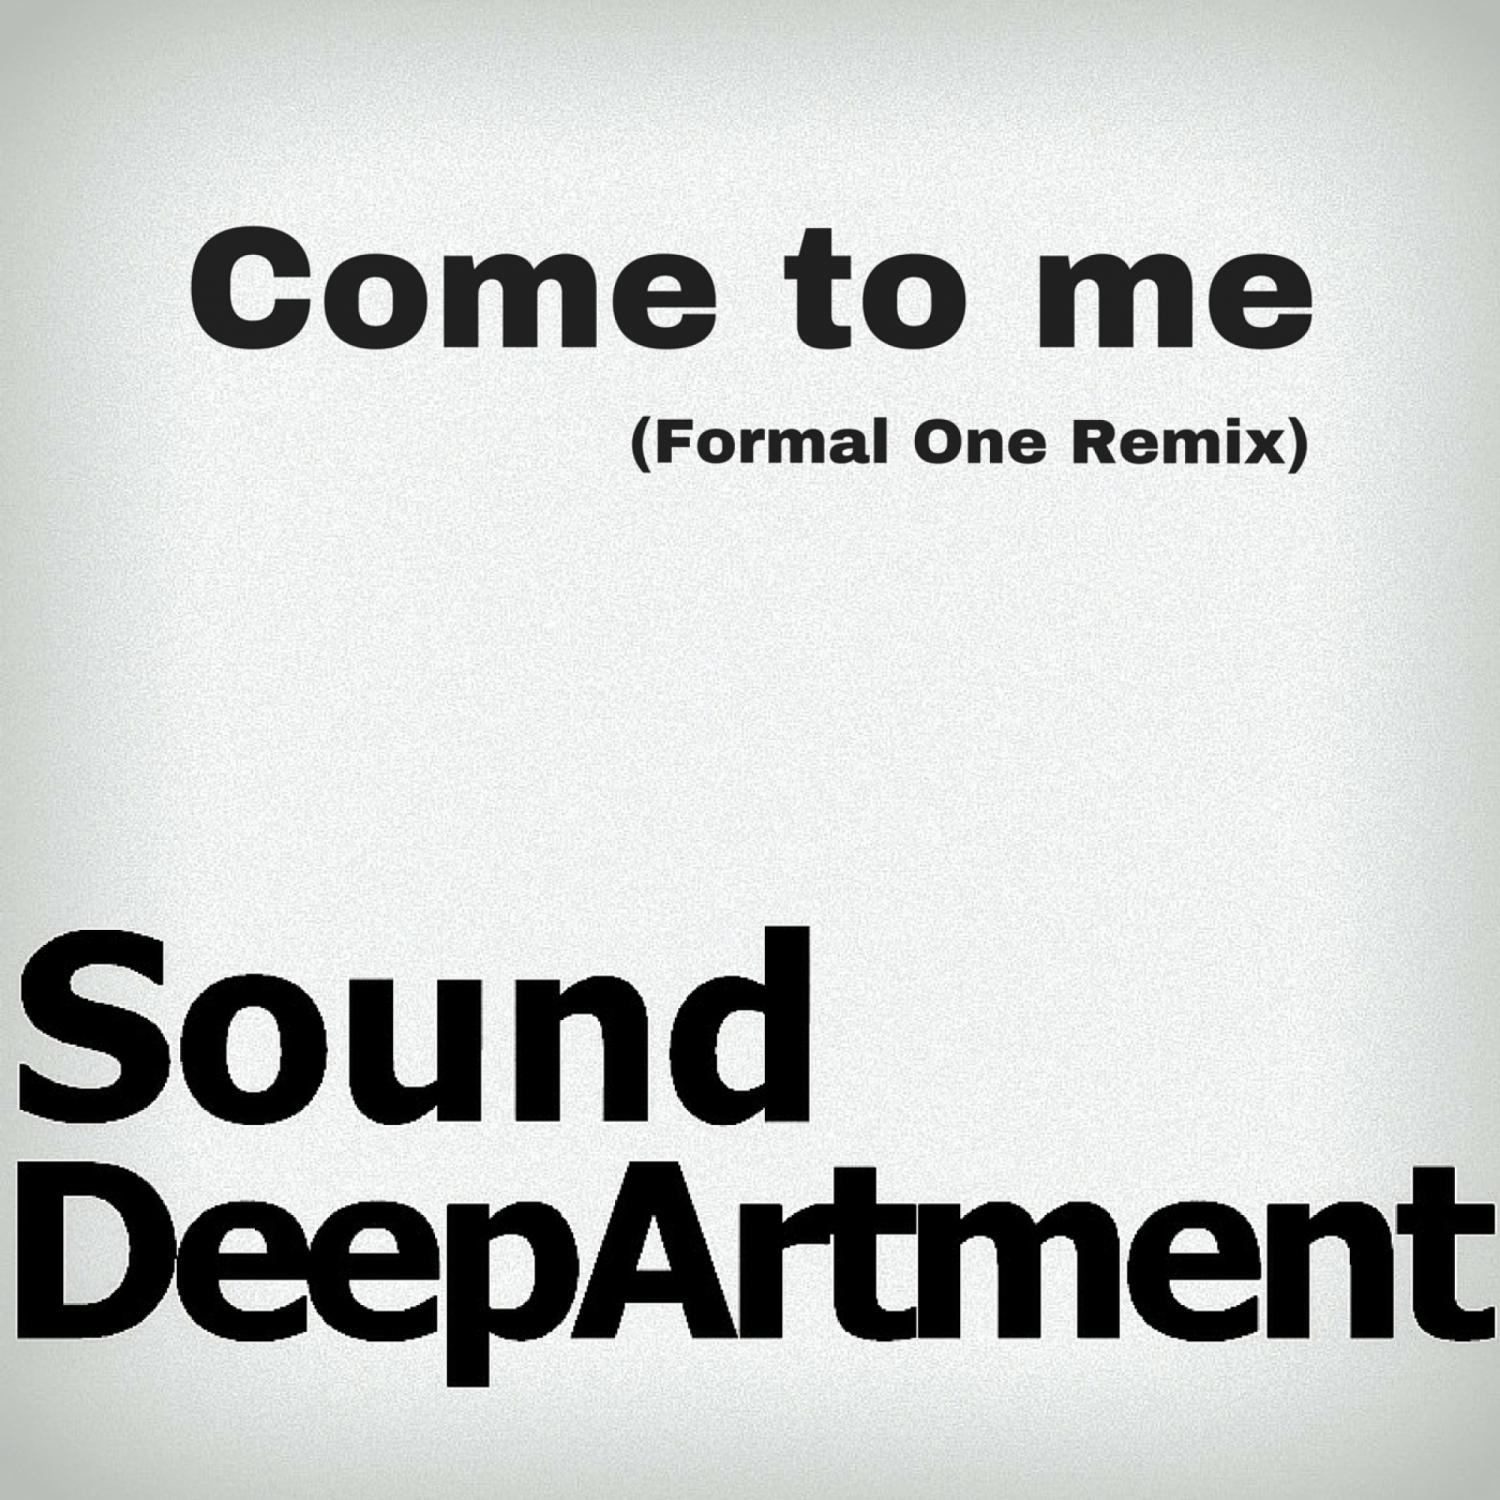 Sound DeepArtment, Formal One - Come To Me (Formal One Remix)